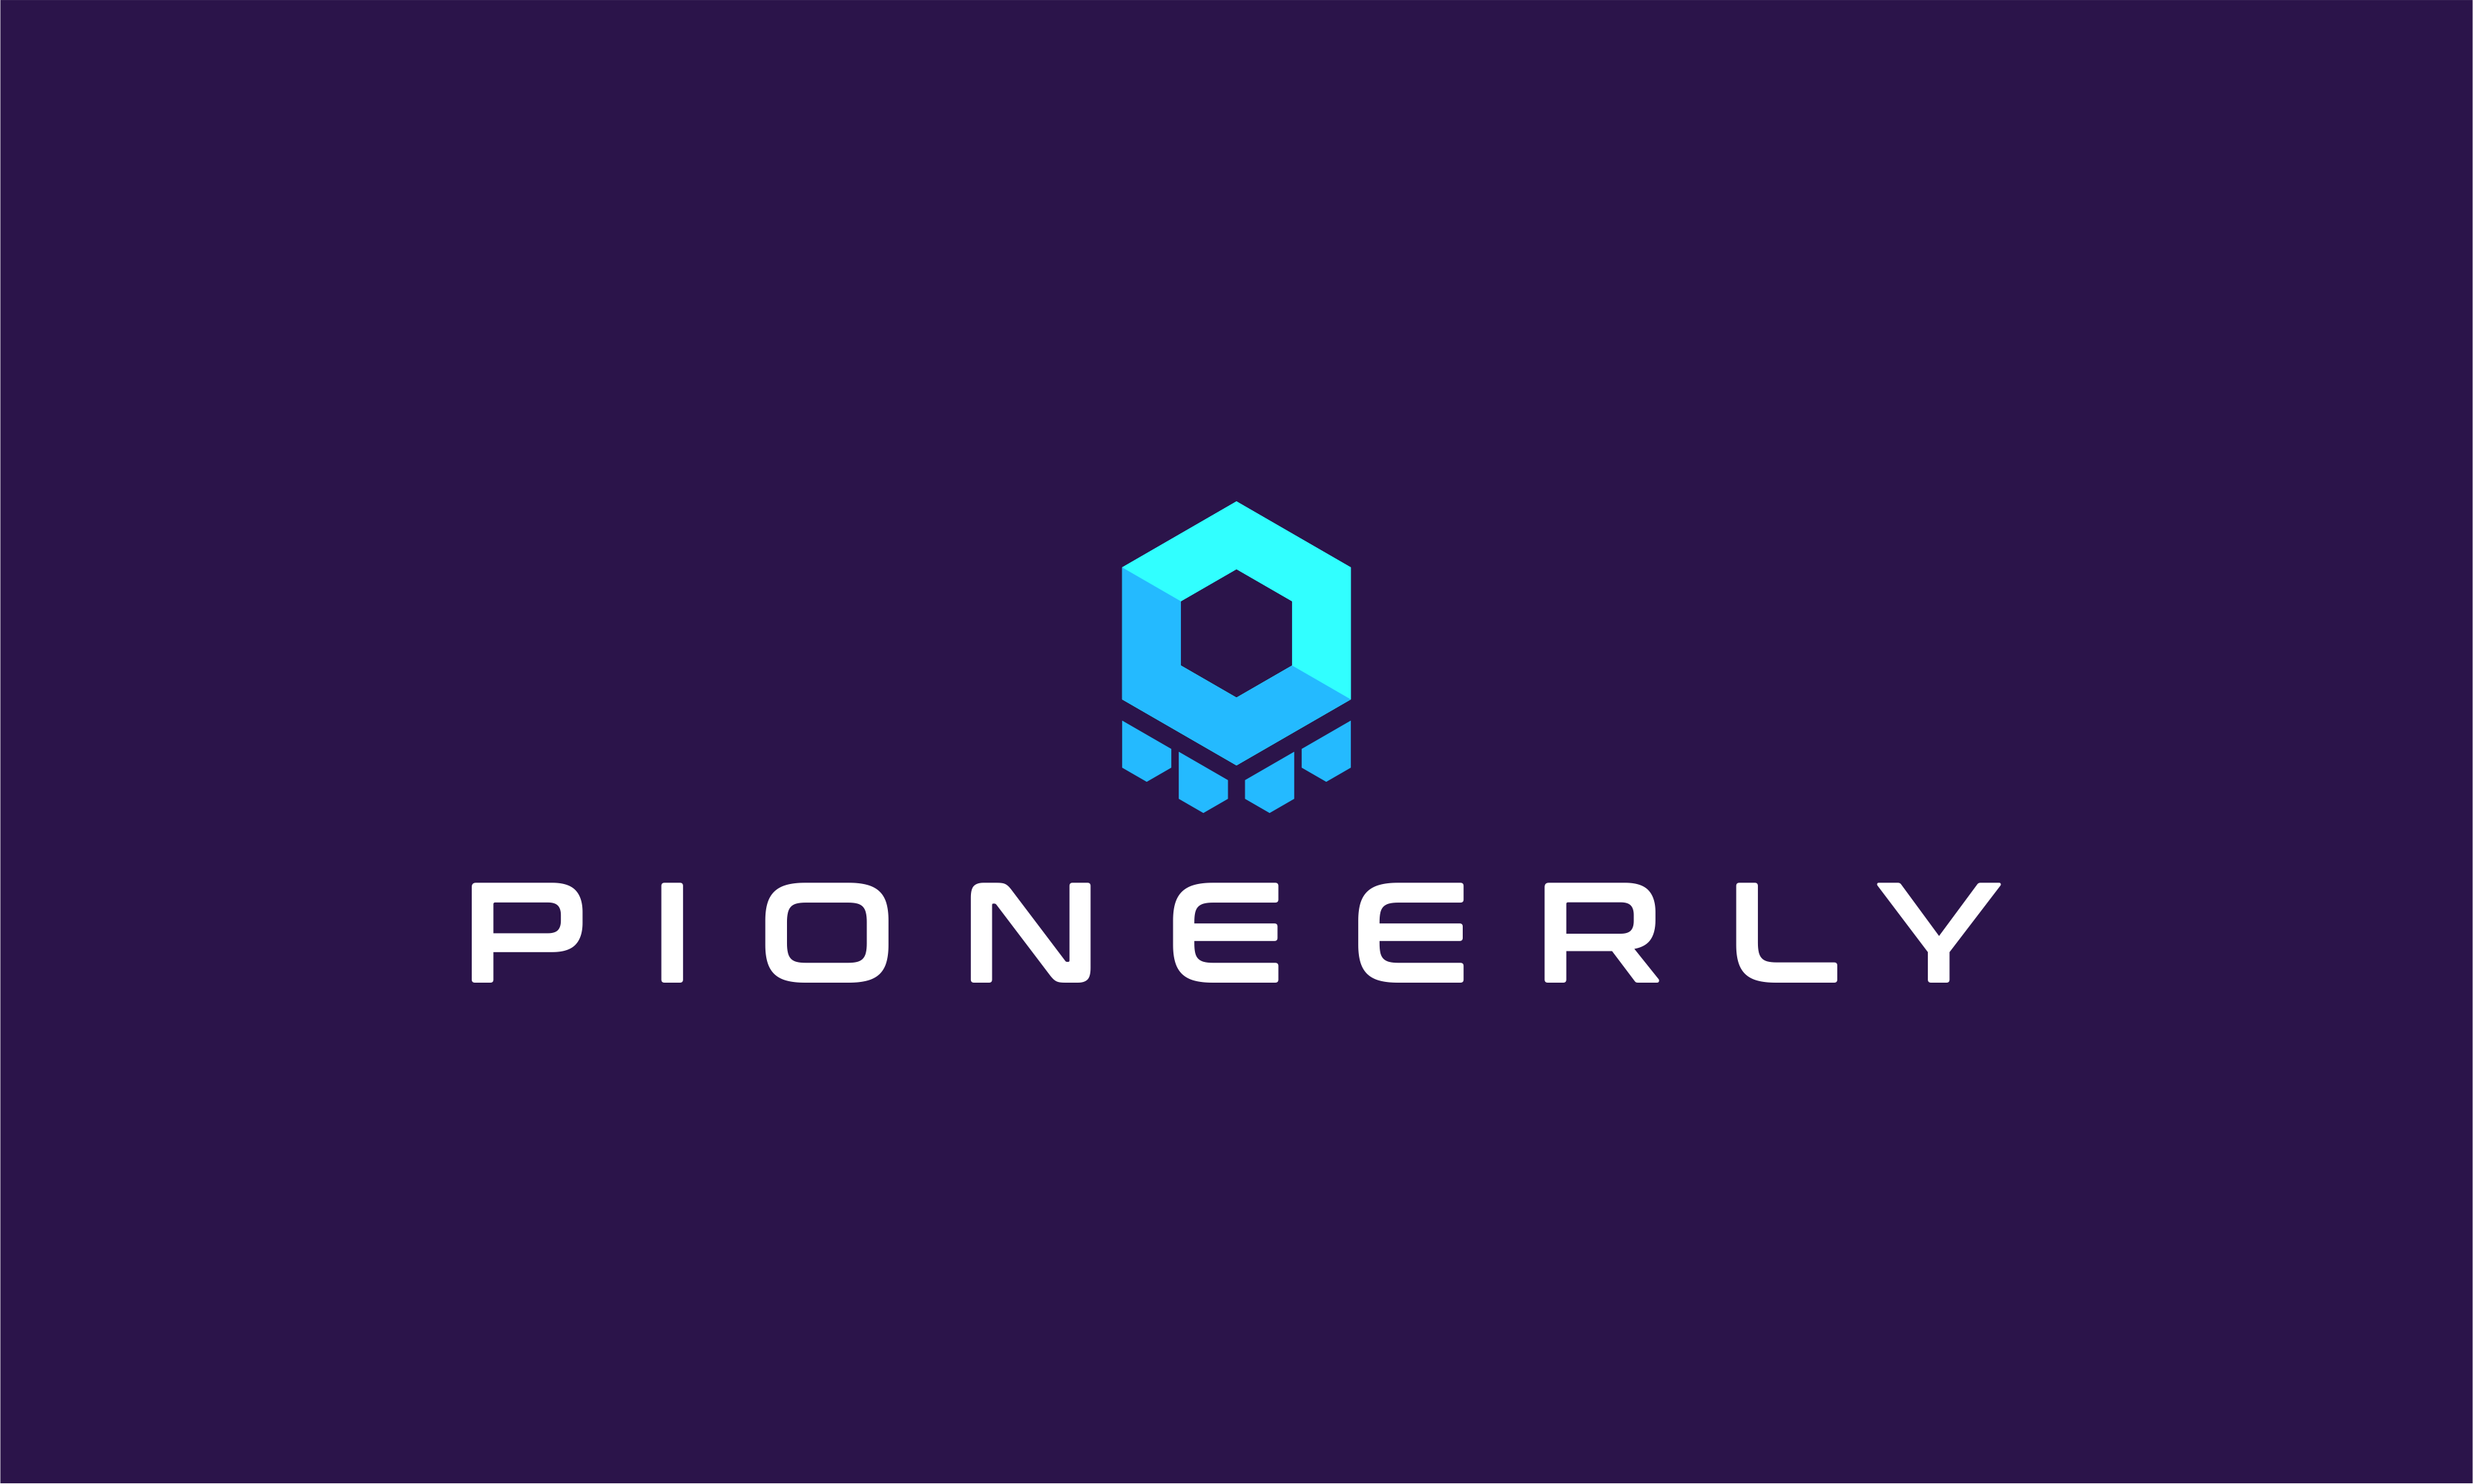 Pioneerly